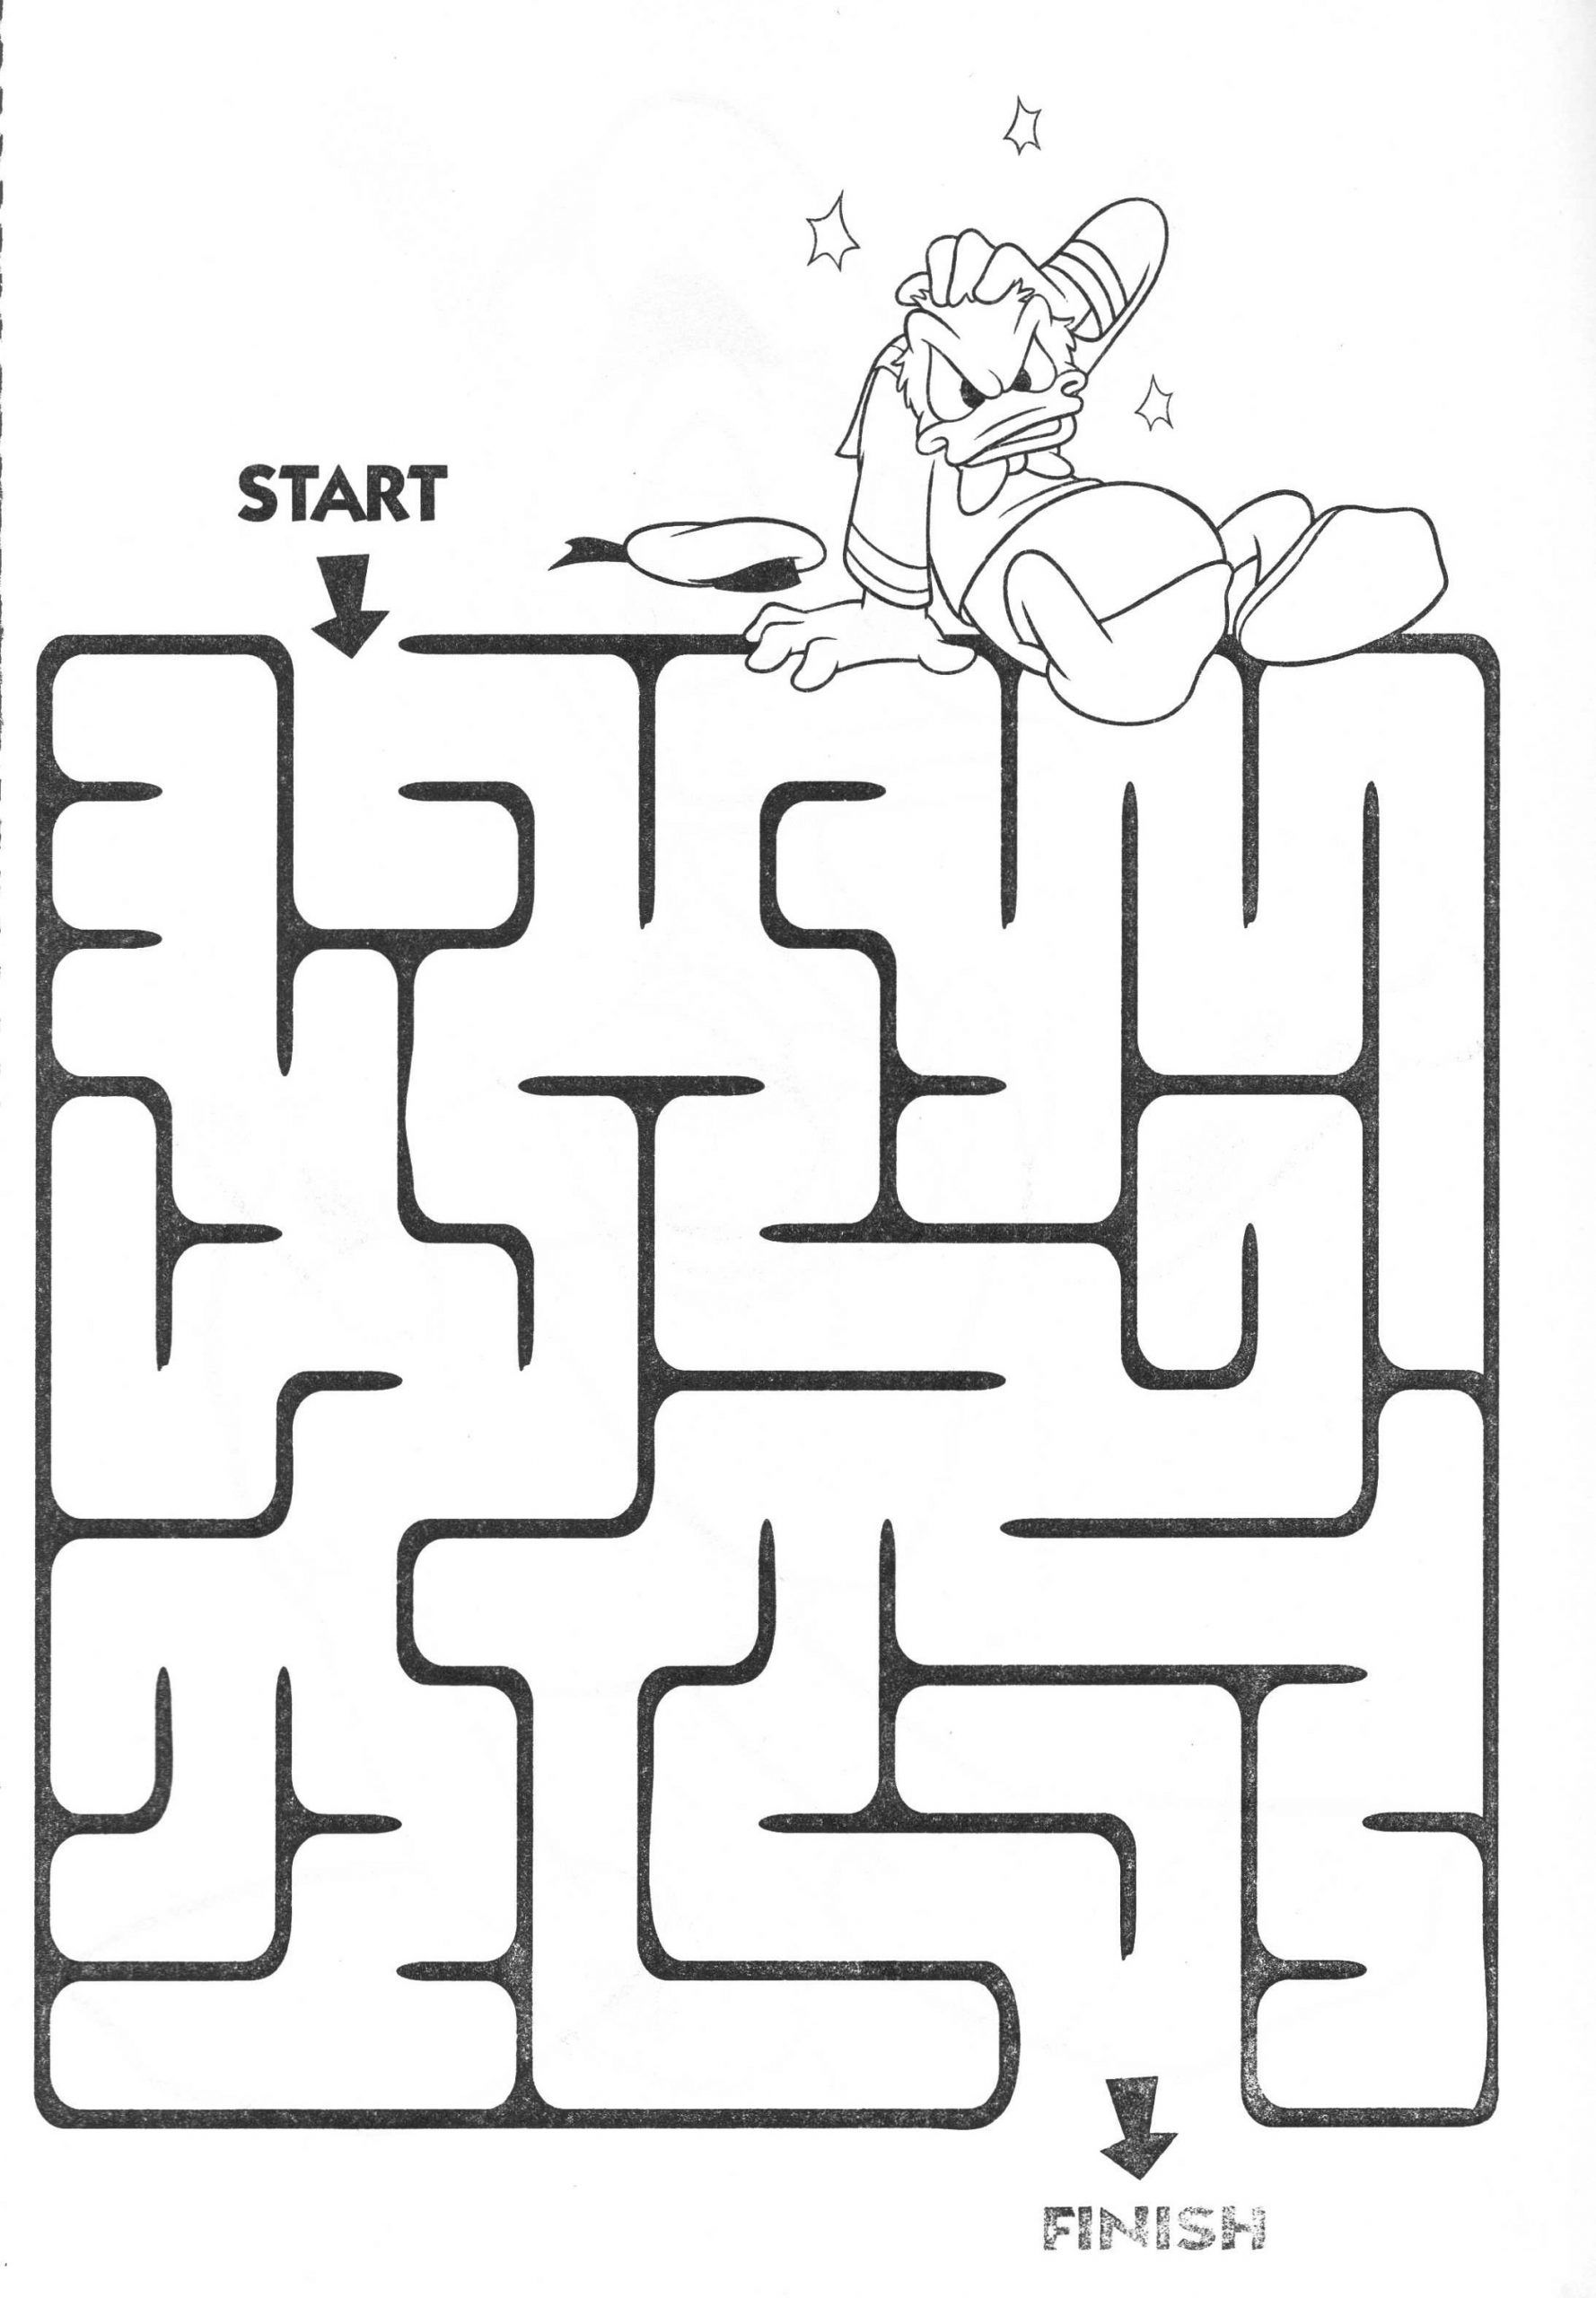 Fun Mazes For Kids To Print And Play Mazes For Kids Mazes For Kids Printable Printable Activities For Kids Maze worksheets for year olds